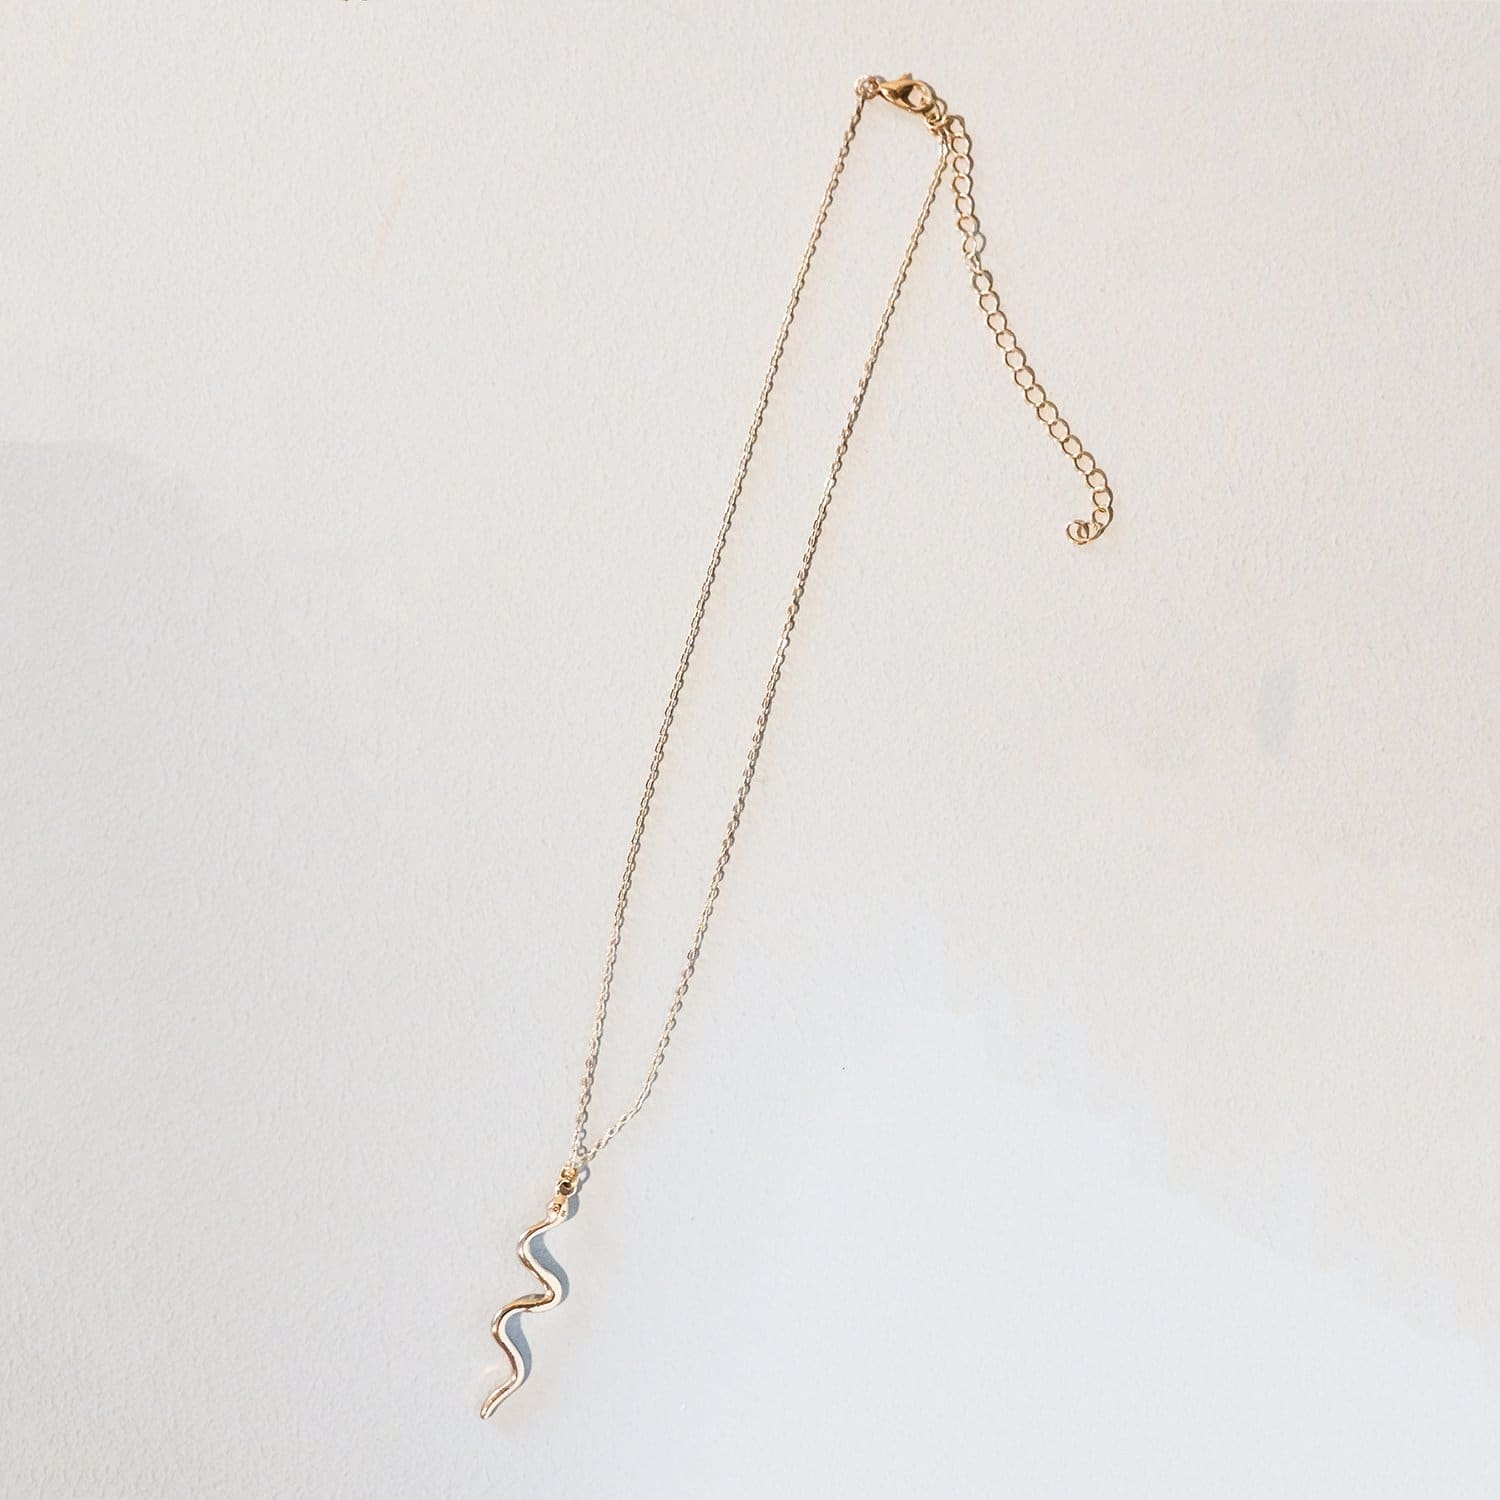 Gold Snake Necklace $20 or Less, Gold, Jewelry, Misc.,